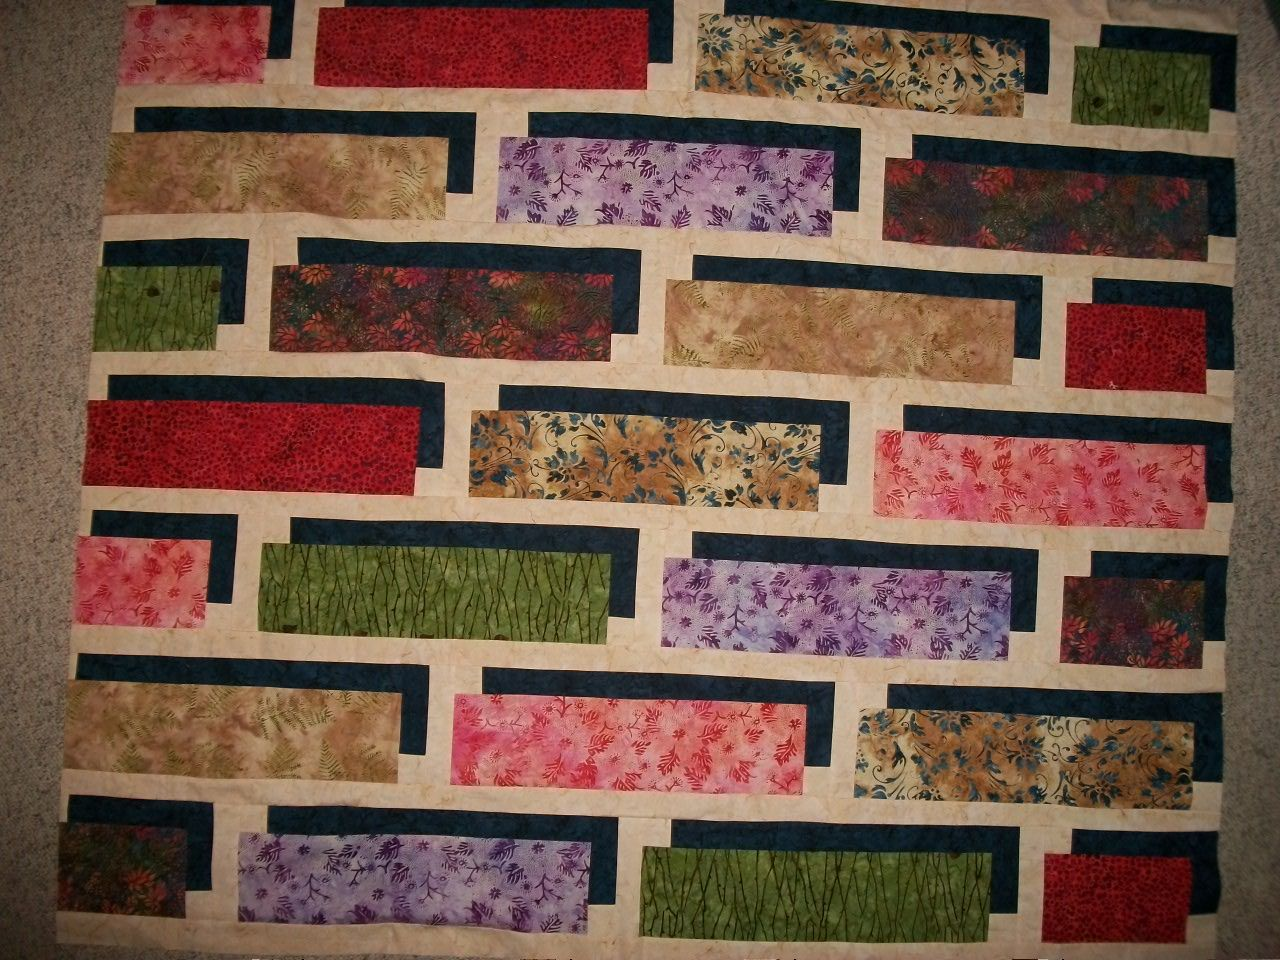 My Shadow Box Quilt | Quilting - | Pinterest | Shadow box, Box and ... : quilt shadow box - Adamdwight.com